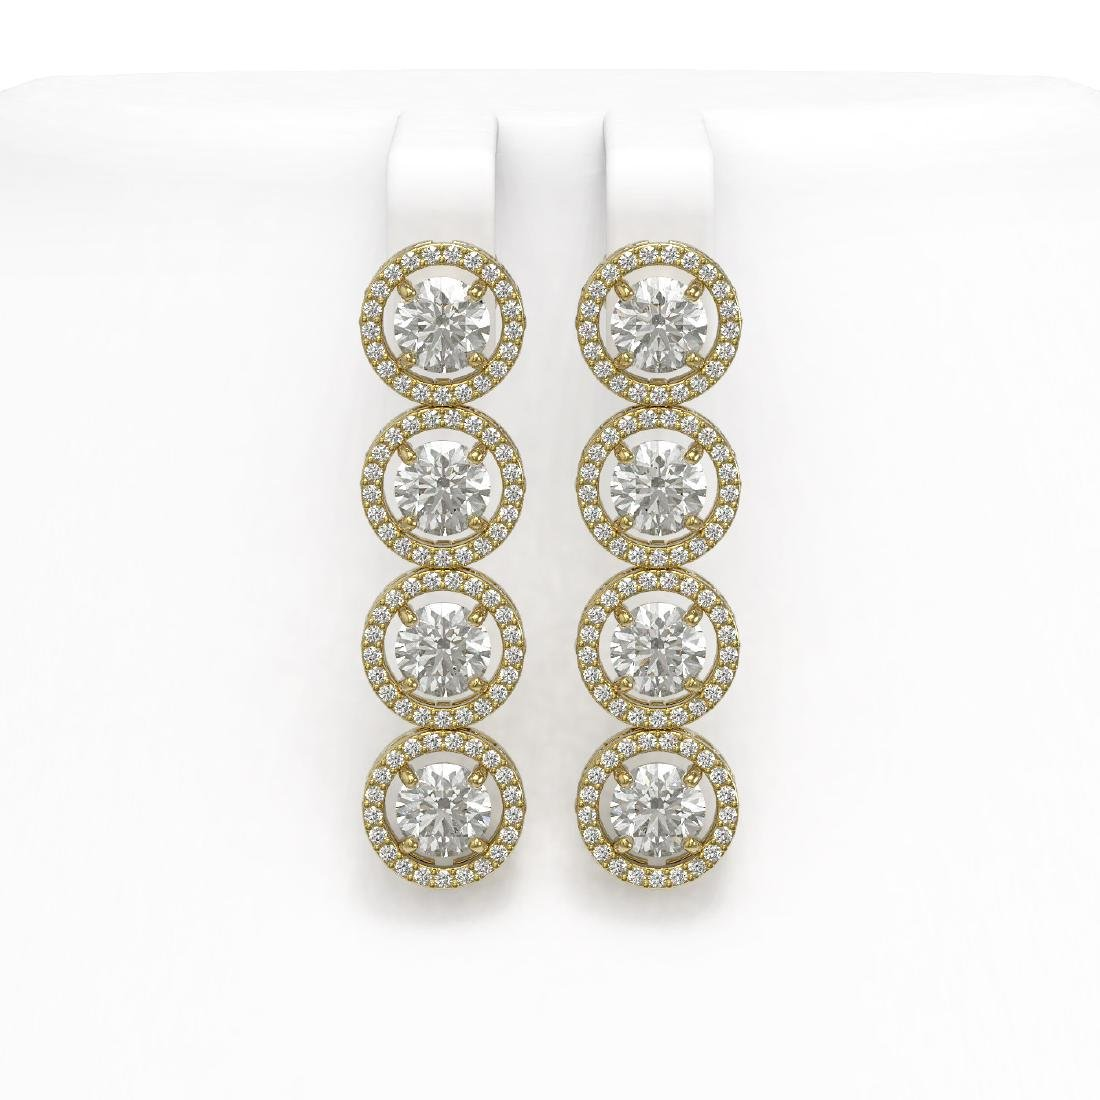 6.14 CTW Diamond Designer Earrings 18K Yellow Gold